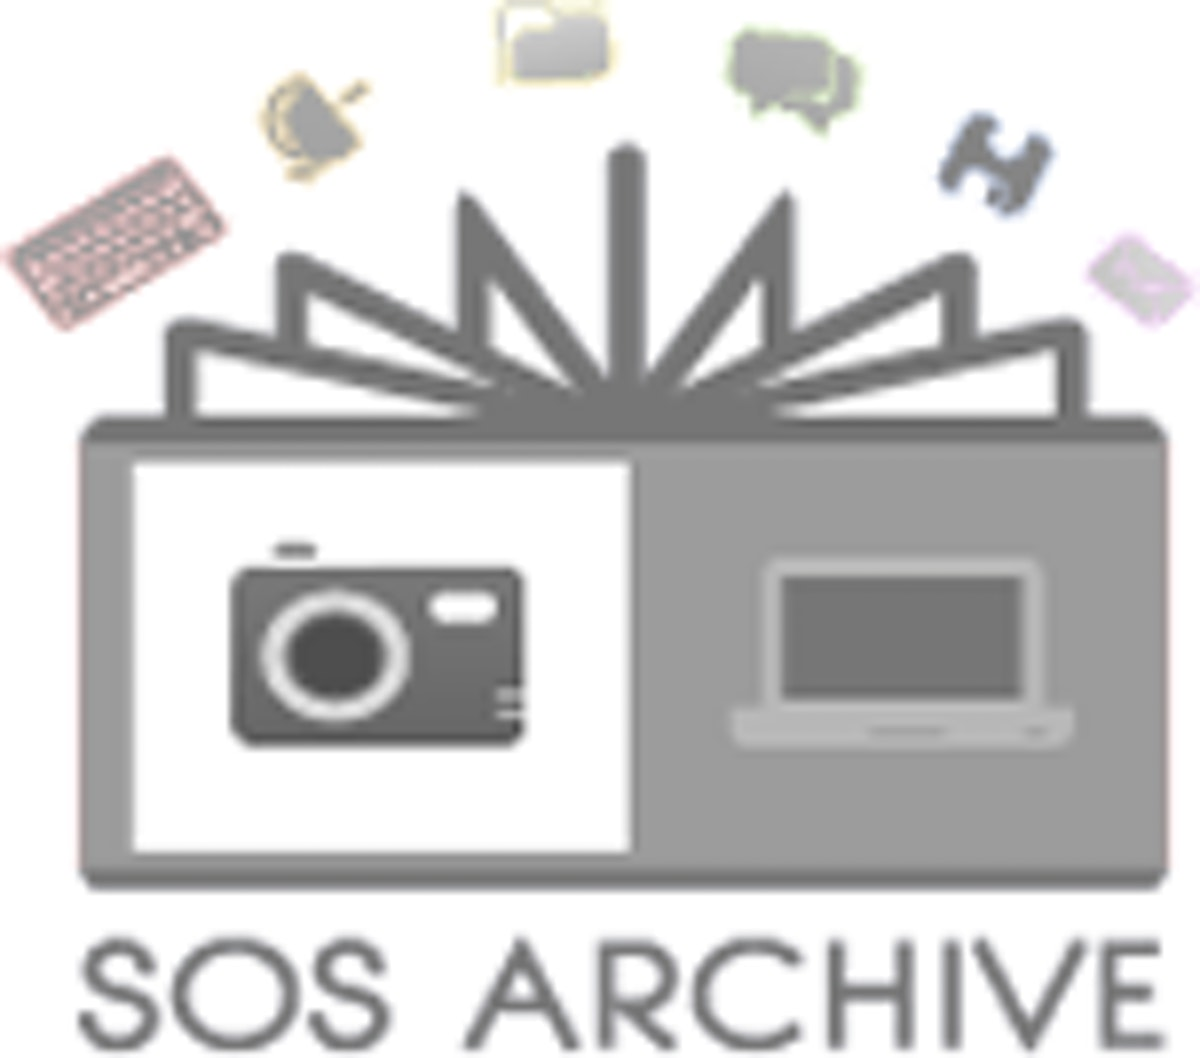 sosarchive1.png